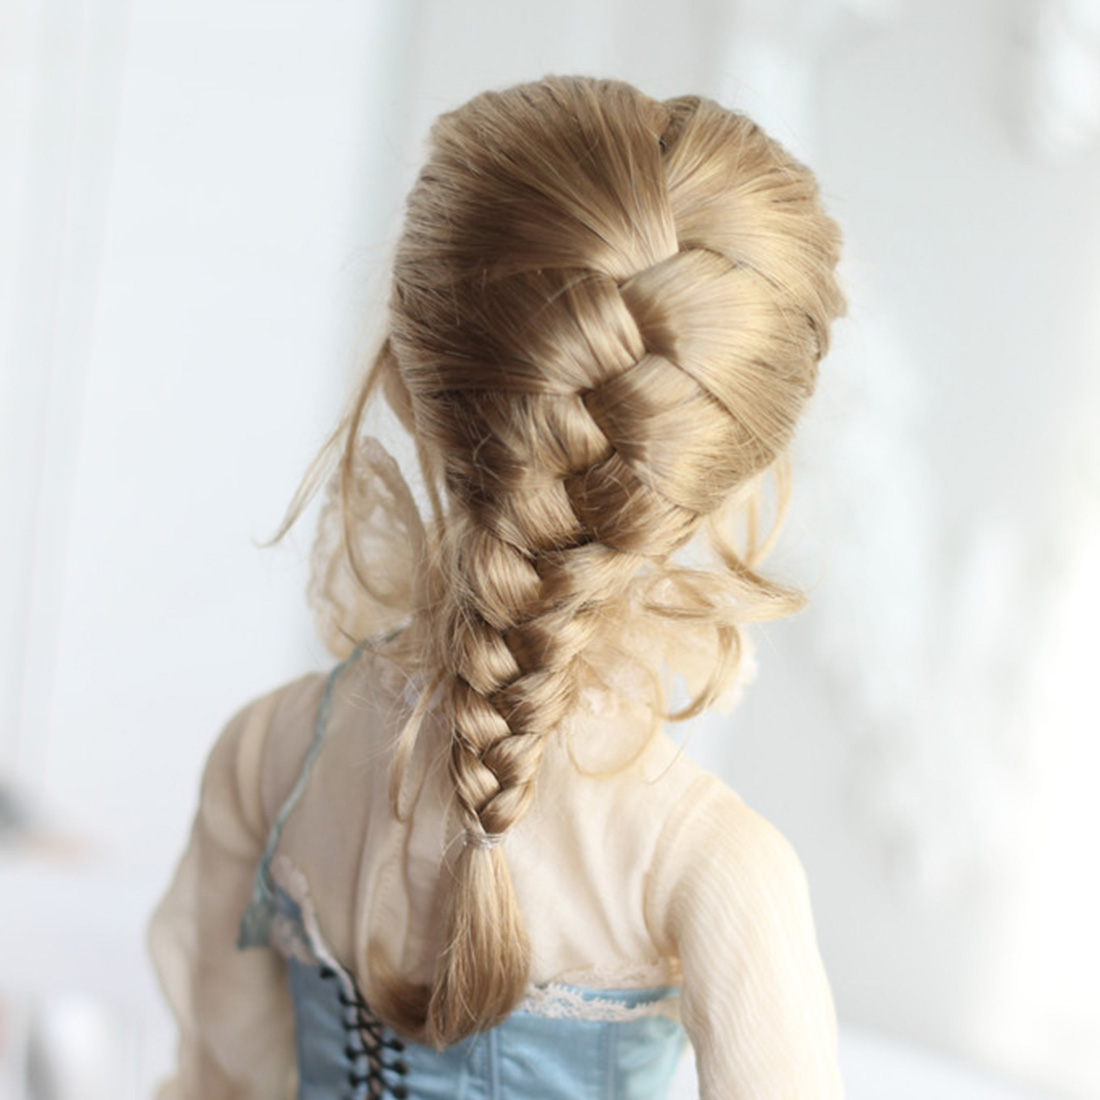 7-8 Inches <font><b>BJD</b></font> Dolls Accessories Female Doll <font><b>Wig</b></font> Braided <font><b>Wig</b></font> For 1/4 <font><b>BJD</b></font> Dolls For Children Educational Toys Gift - Light <font><b>Brown</b></font> image